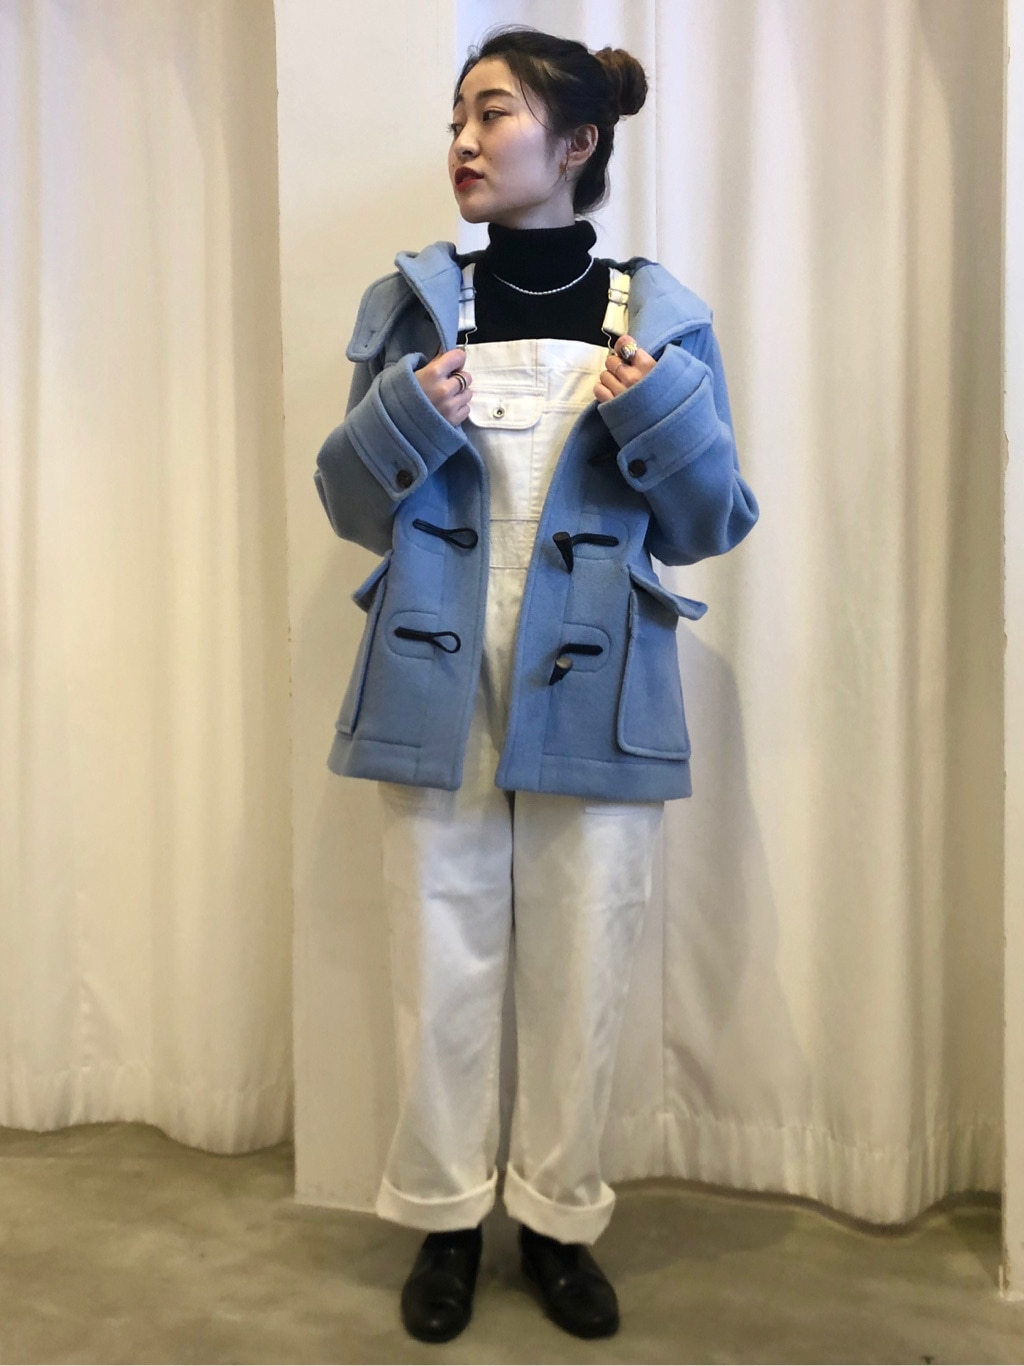 Dot and Stripes CHILD WOMAN ラフォーレ原宿 身長:153cm 2020.12.27